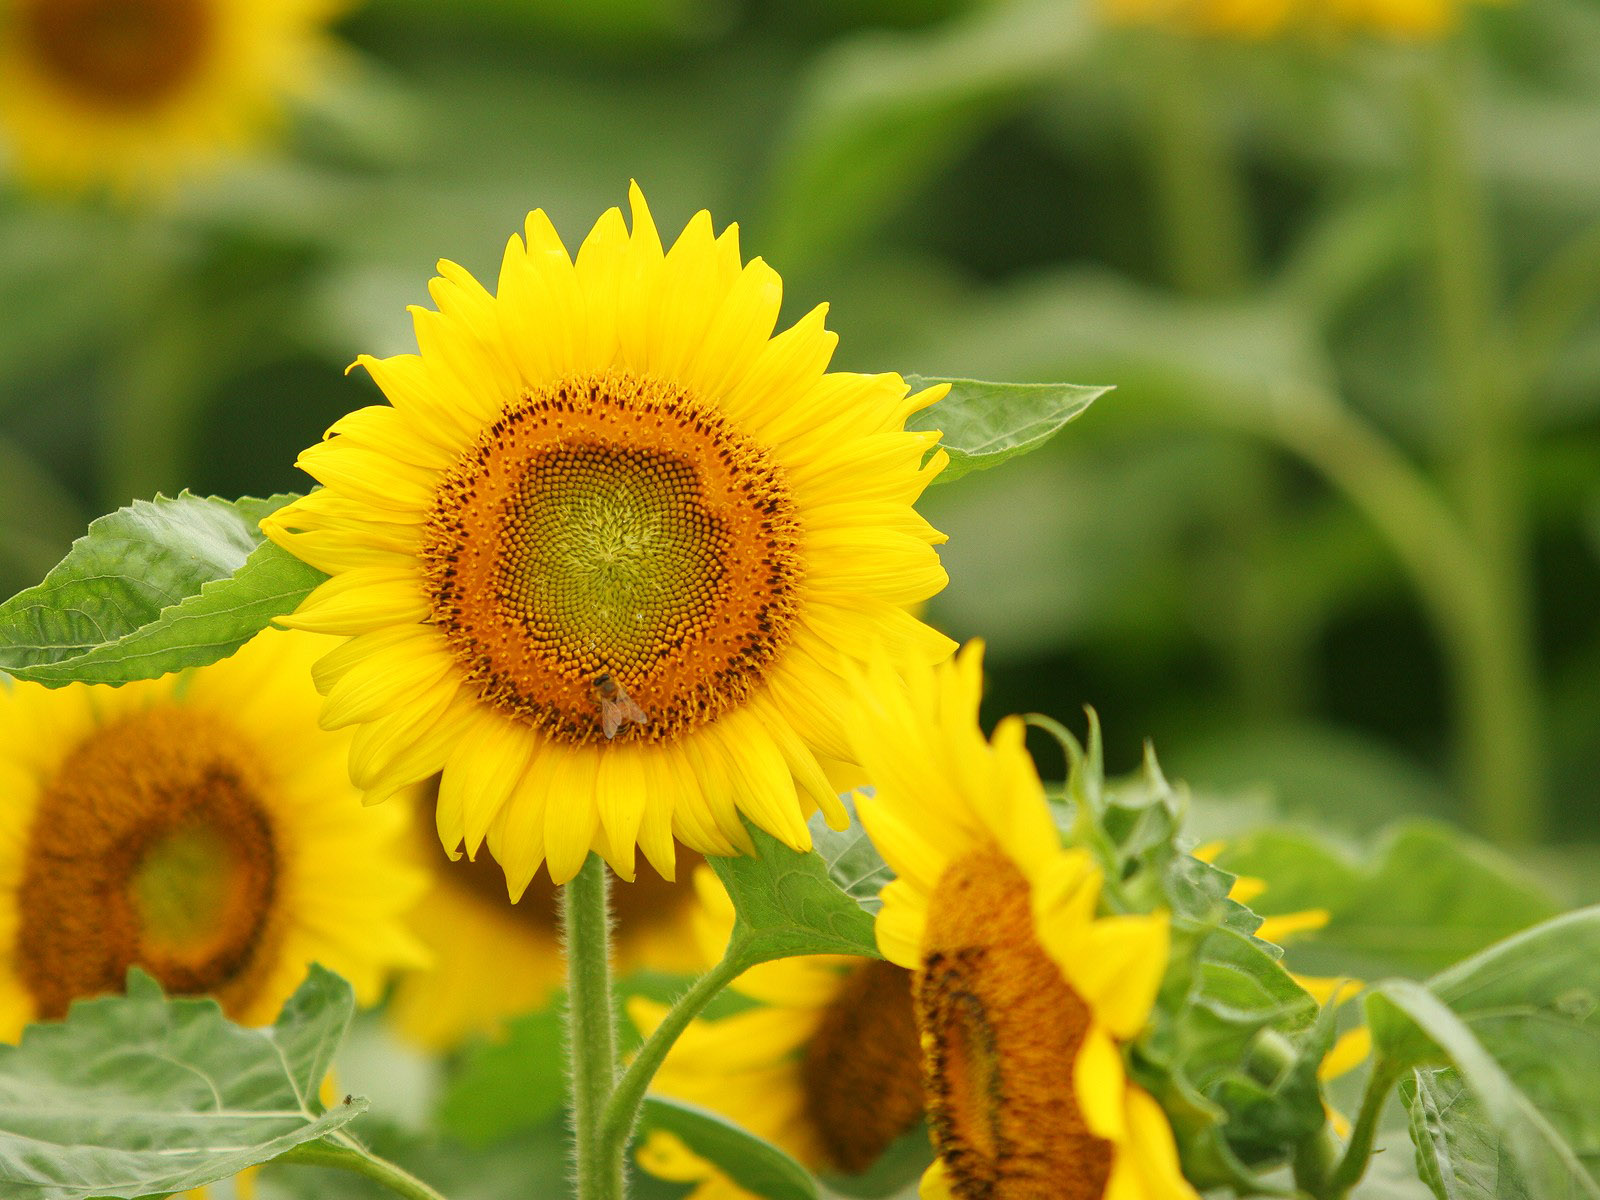 Sunflower Photo 9662